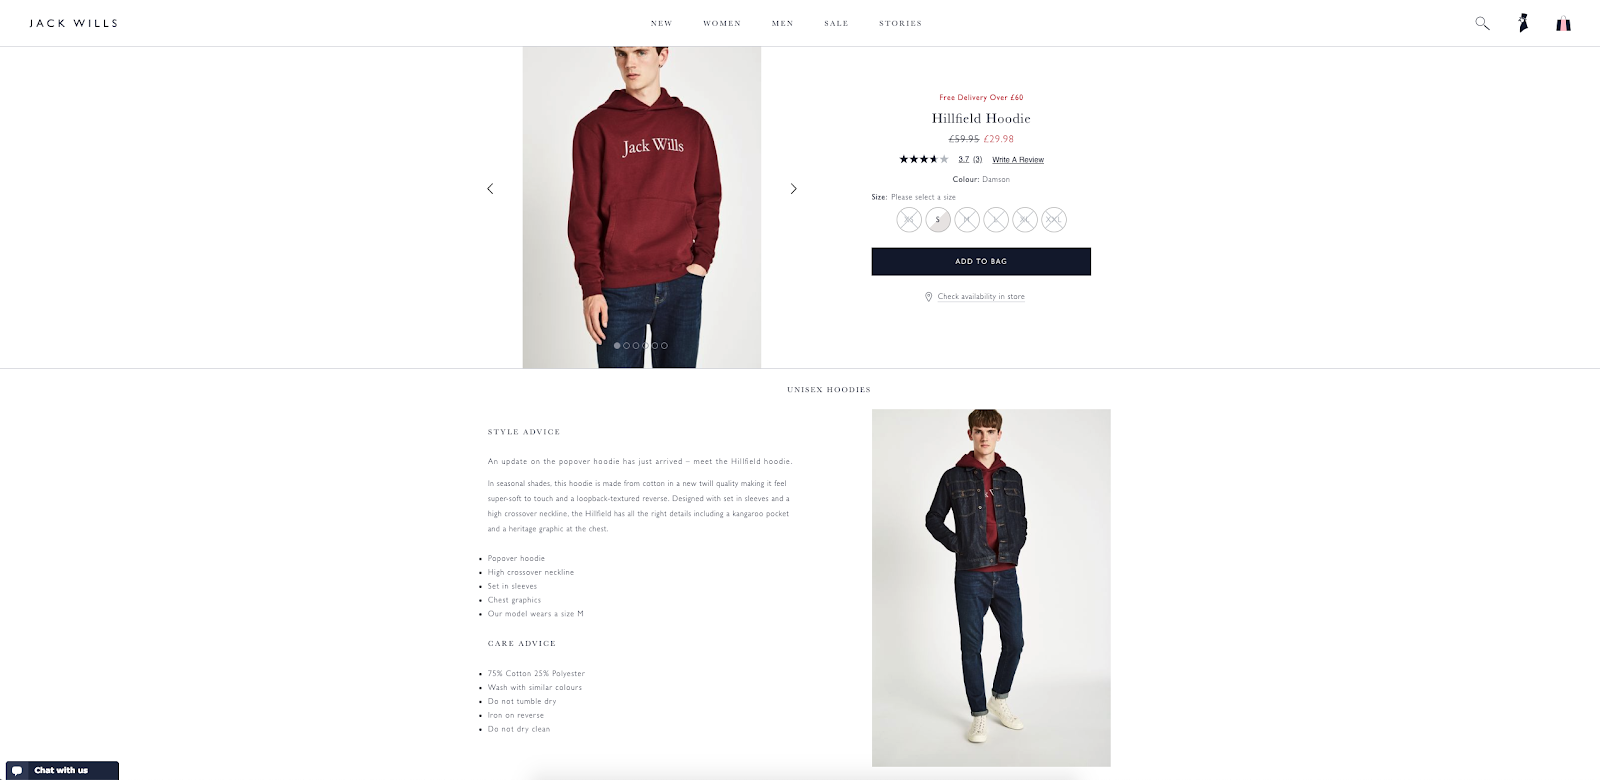 best product detail page examples jack wills